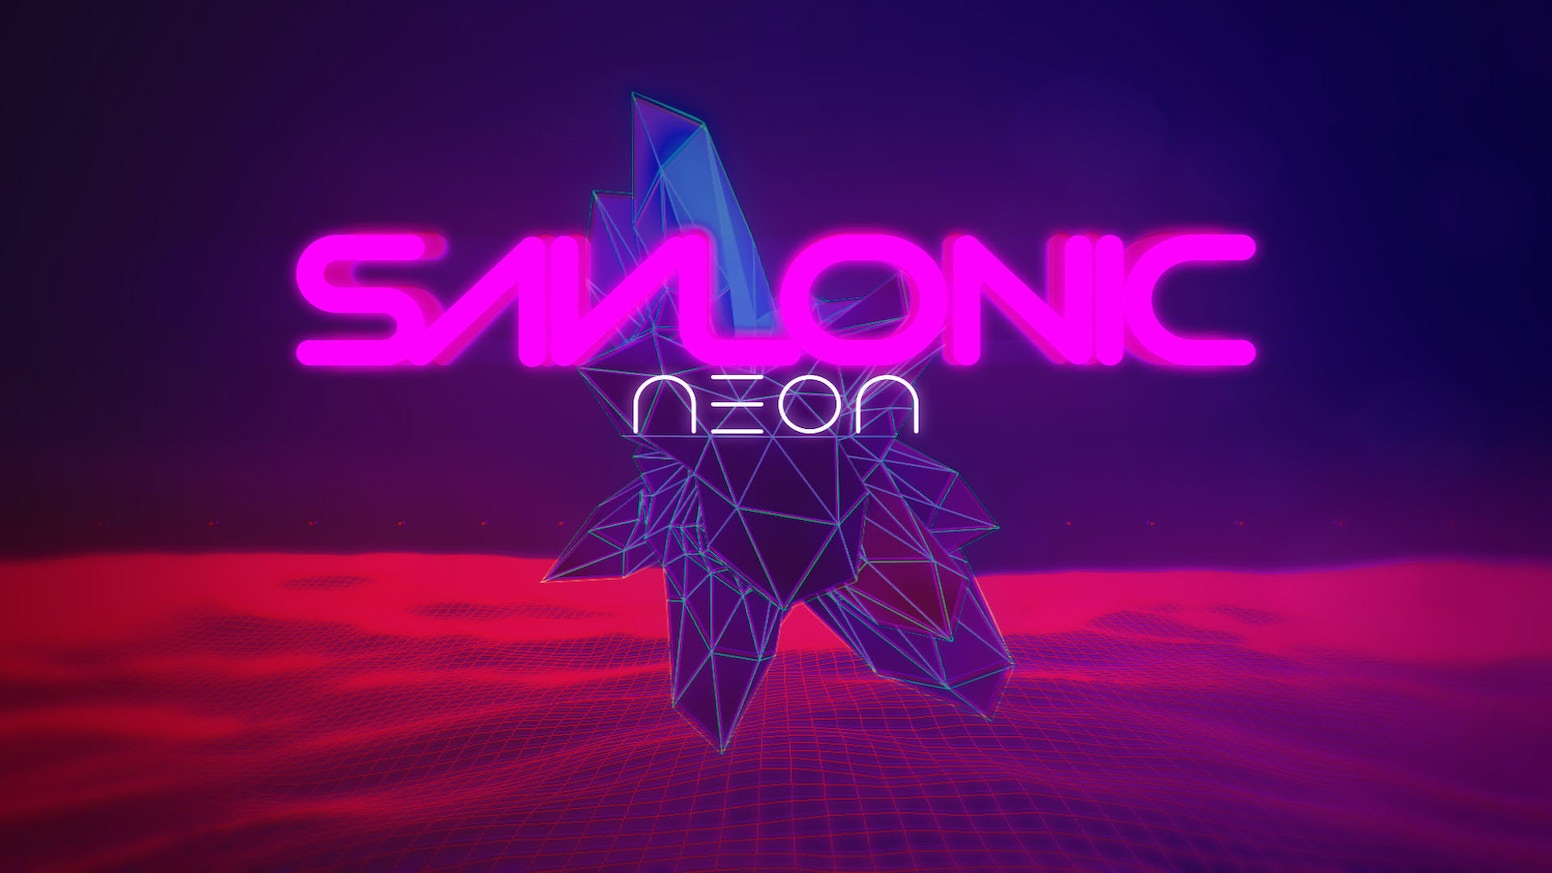 Following the success of their 1st album, Red, animated synthpop band Savlonic are looking for funding for their 2nd album, Neon.